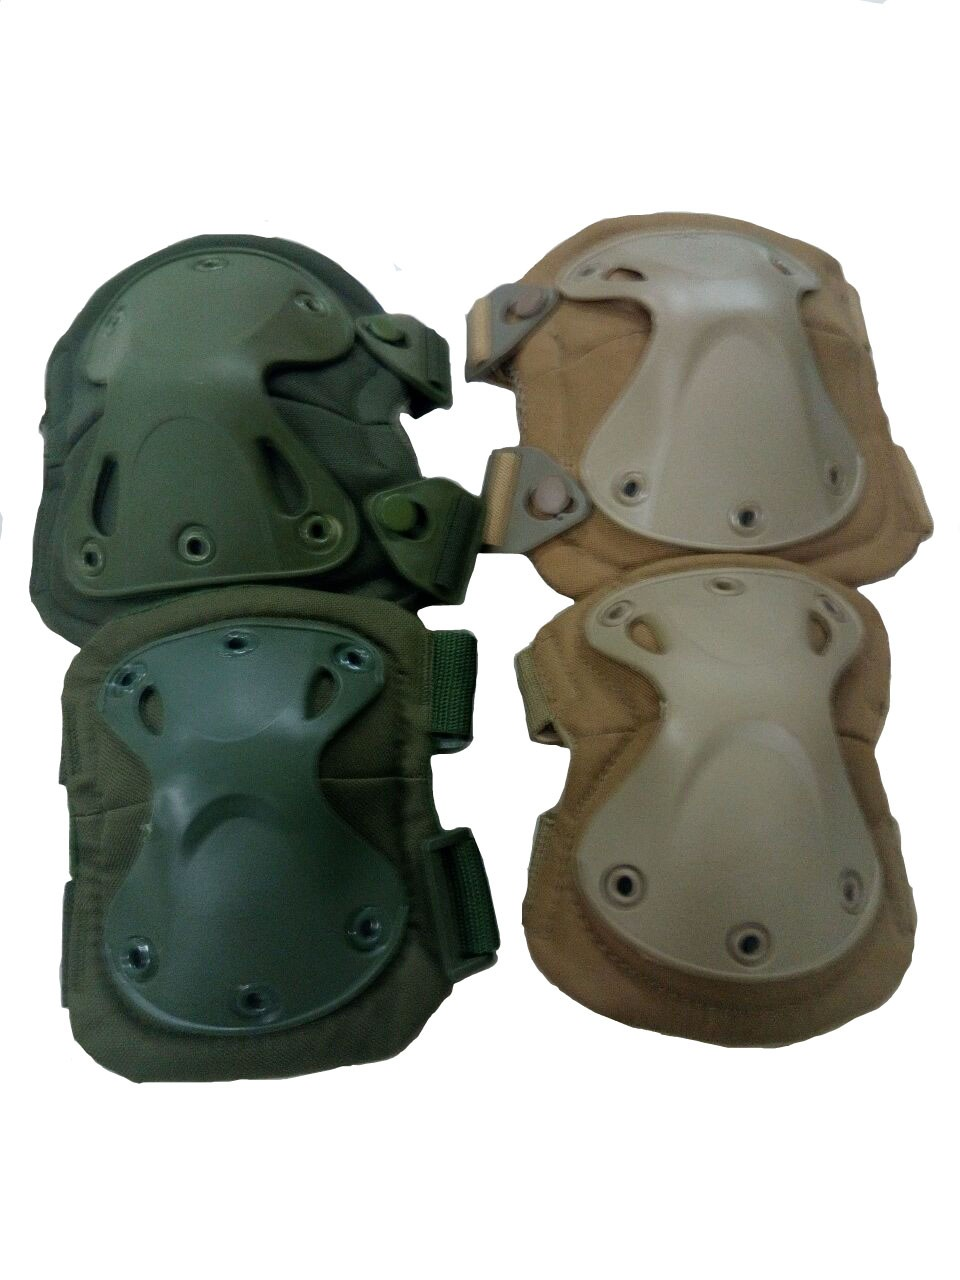 Loveslf army military tactical knee pads China manufacture safety knee pads